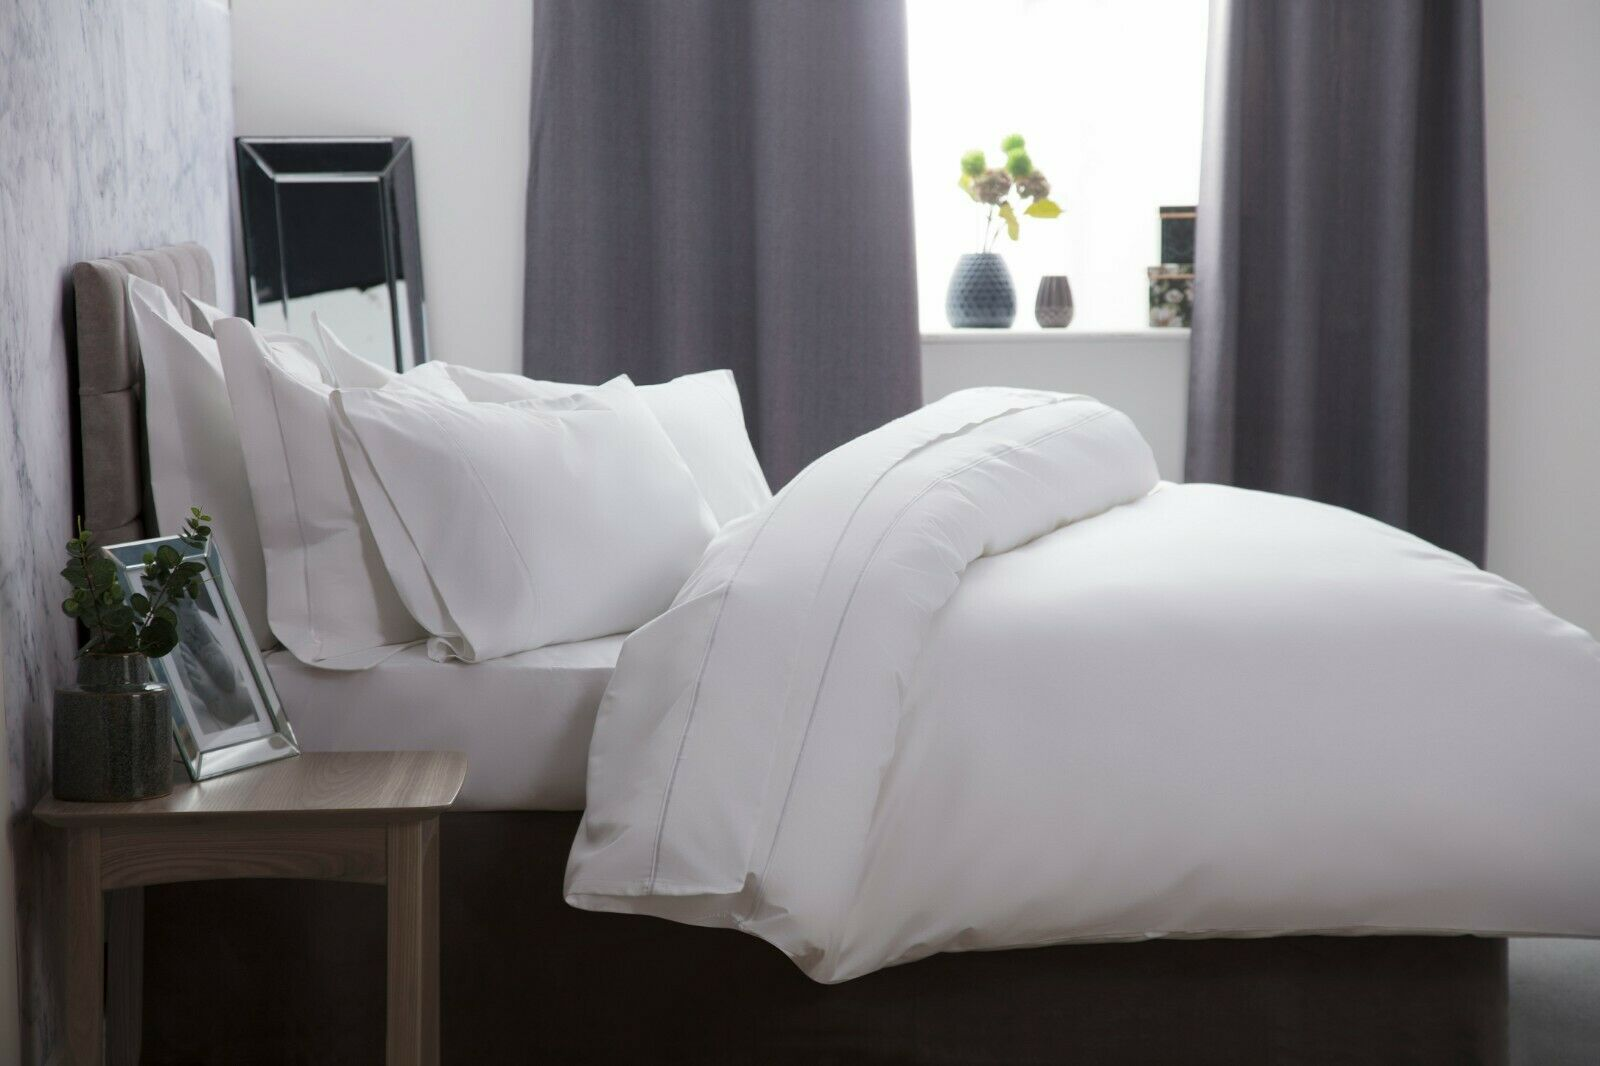 1000 Thread Count Single Ply Egyptian Cotton Fitted Sheets Weiß, Ivory or grau